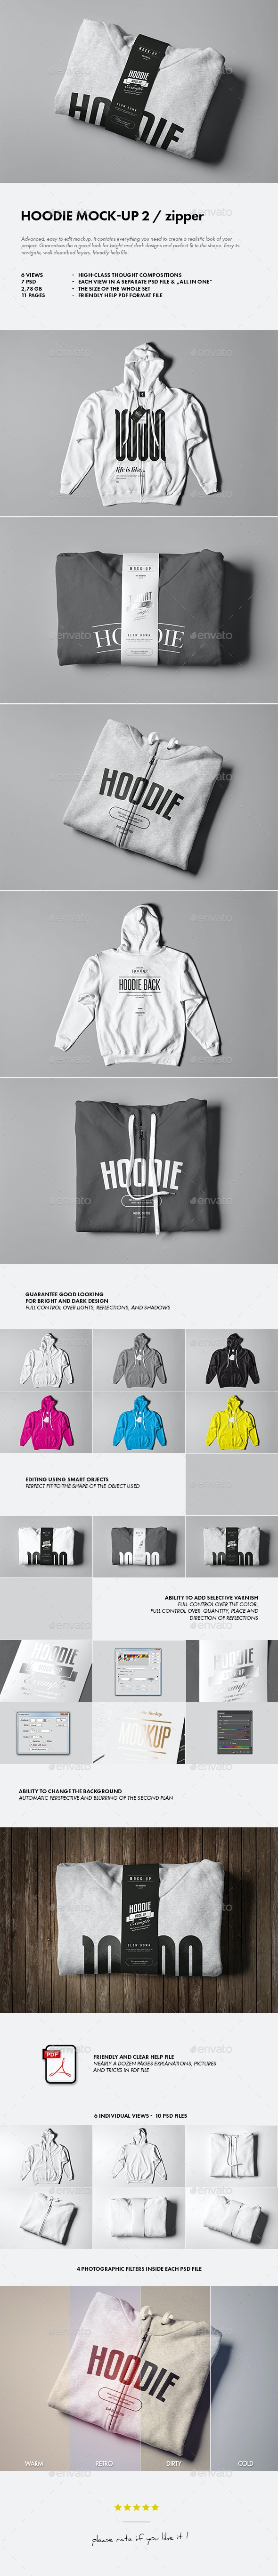 Hoodie Mock-up 2 - Apparel Product Mock-Ups